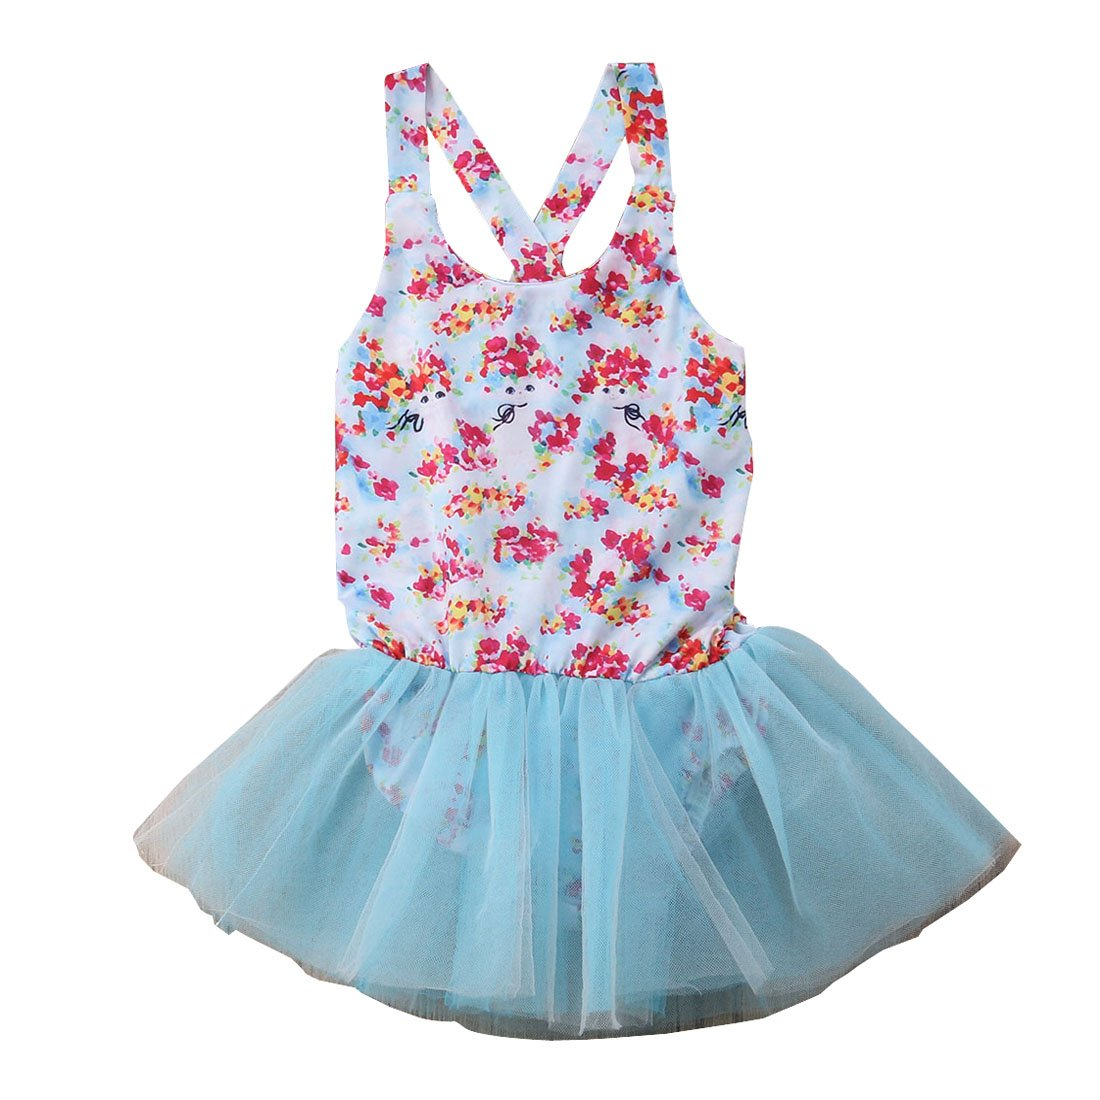 Boiiwant Little Girl One Piece Swimsuit Summer Blue Lace Flowers Print Skirt 1-5T